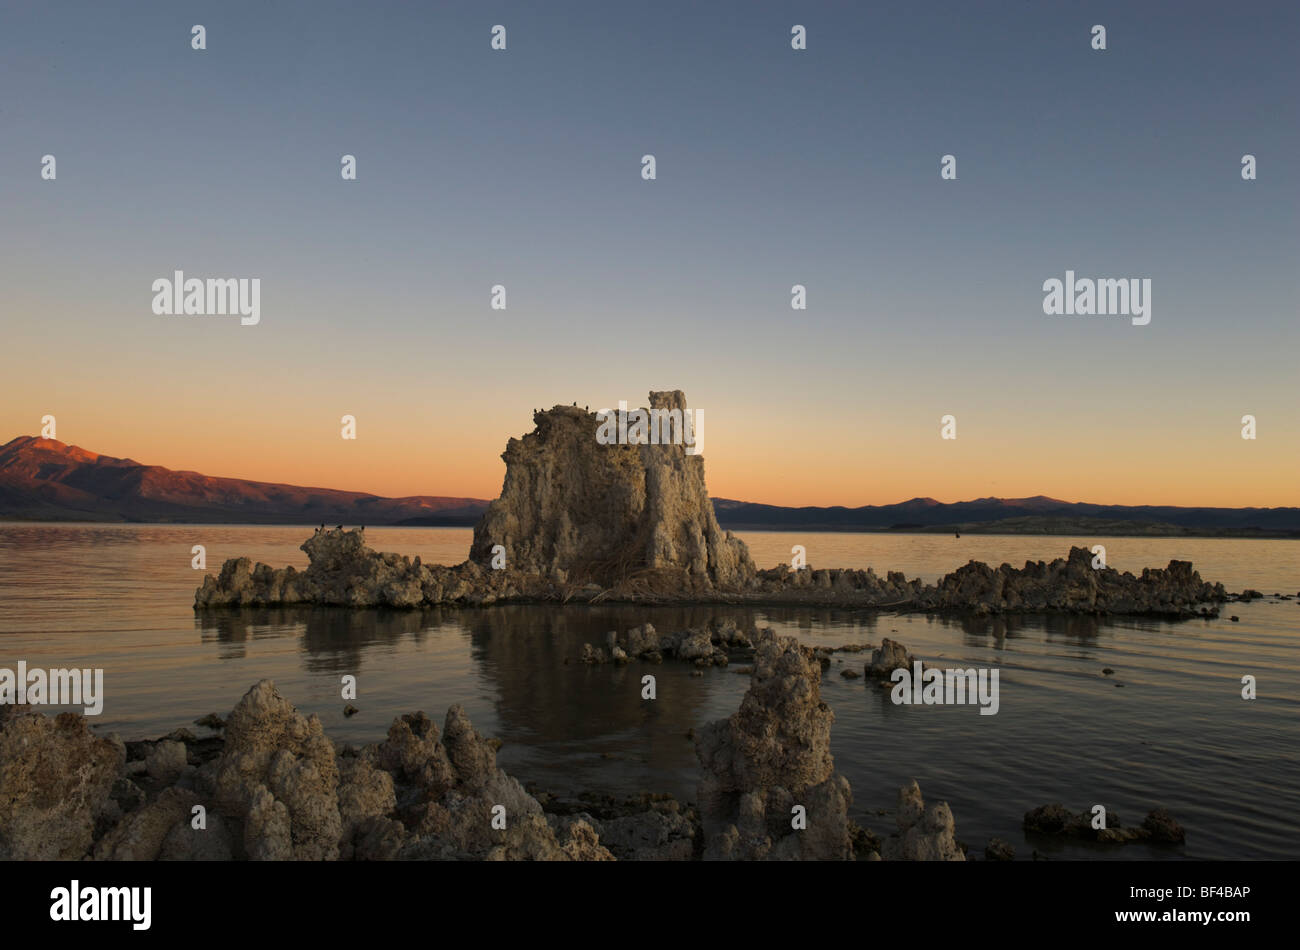 Sonnenaufgang am South Tufa, Mono Lake, Lee Vining, California, USA Stockbild